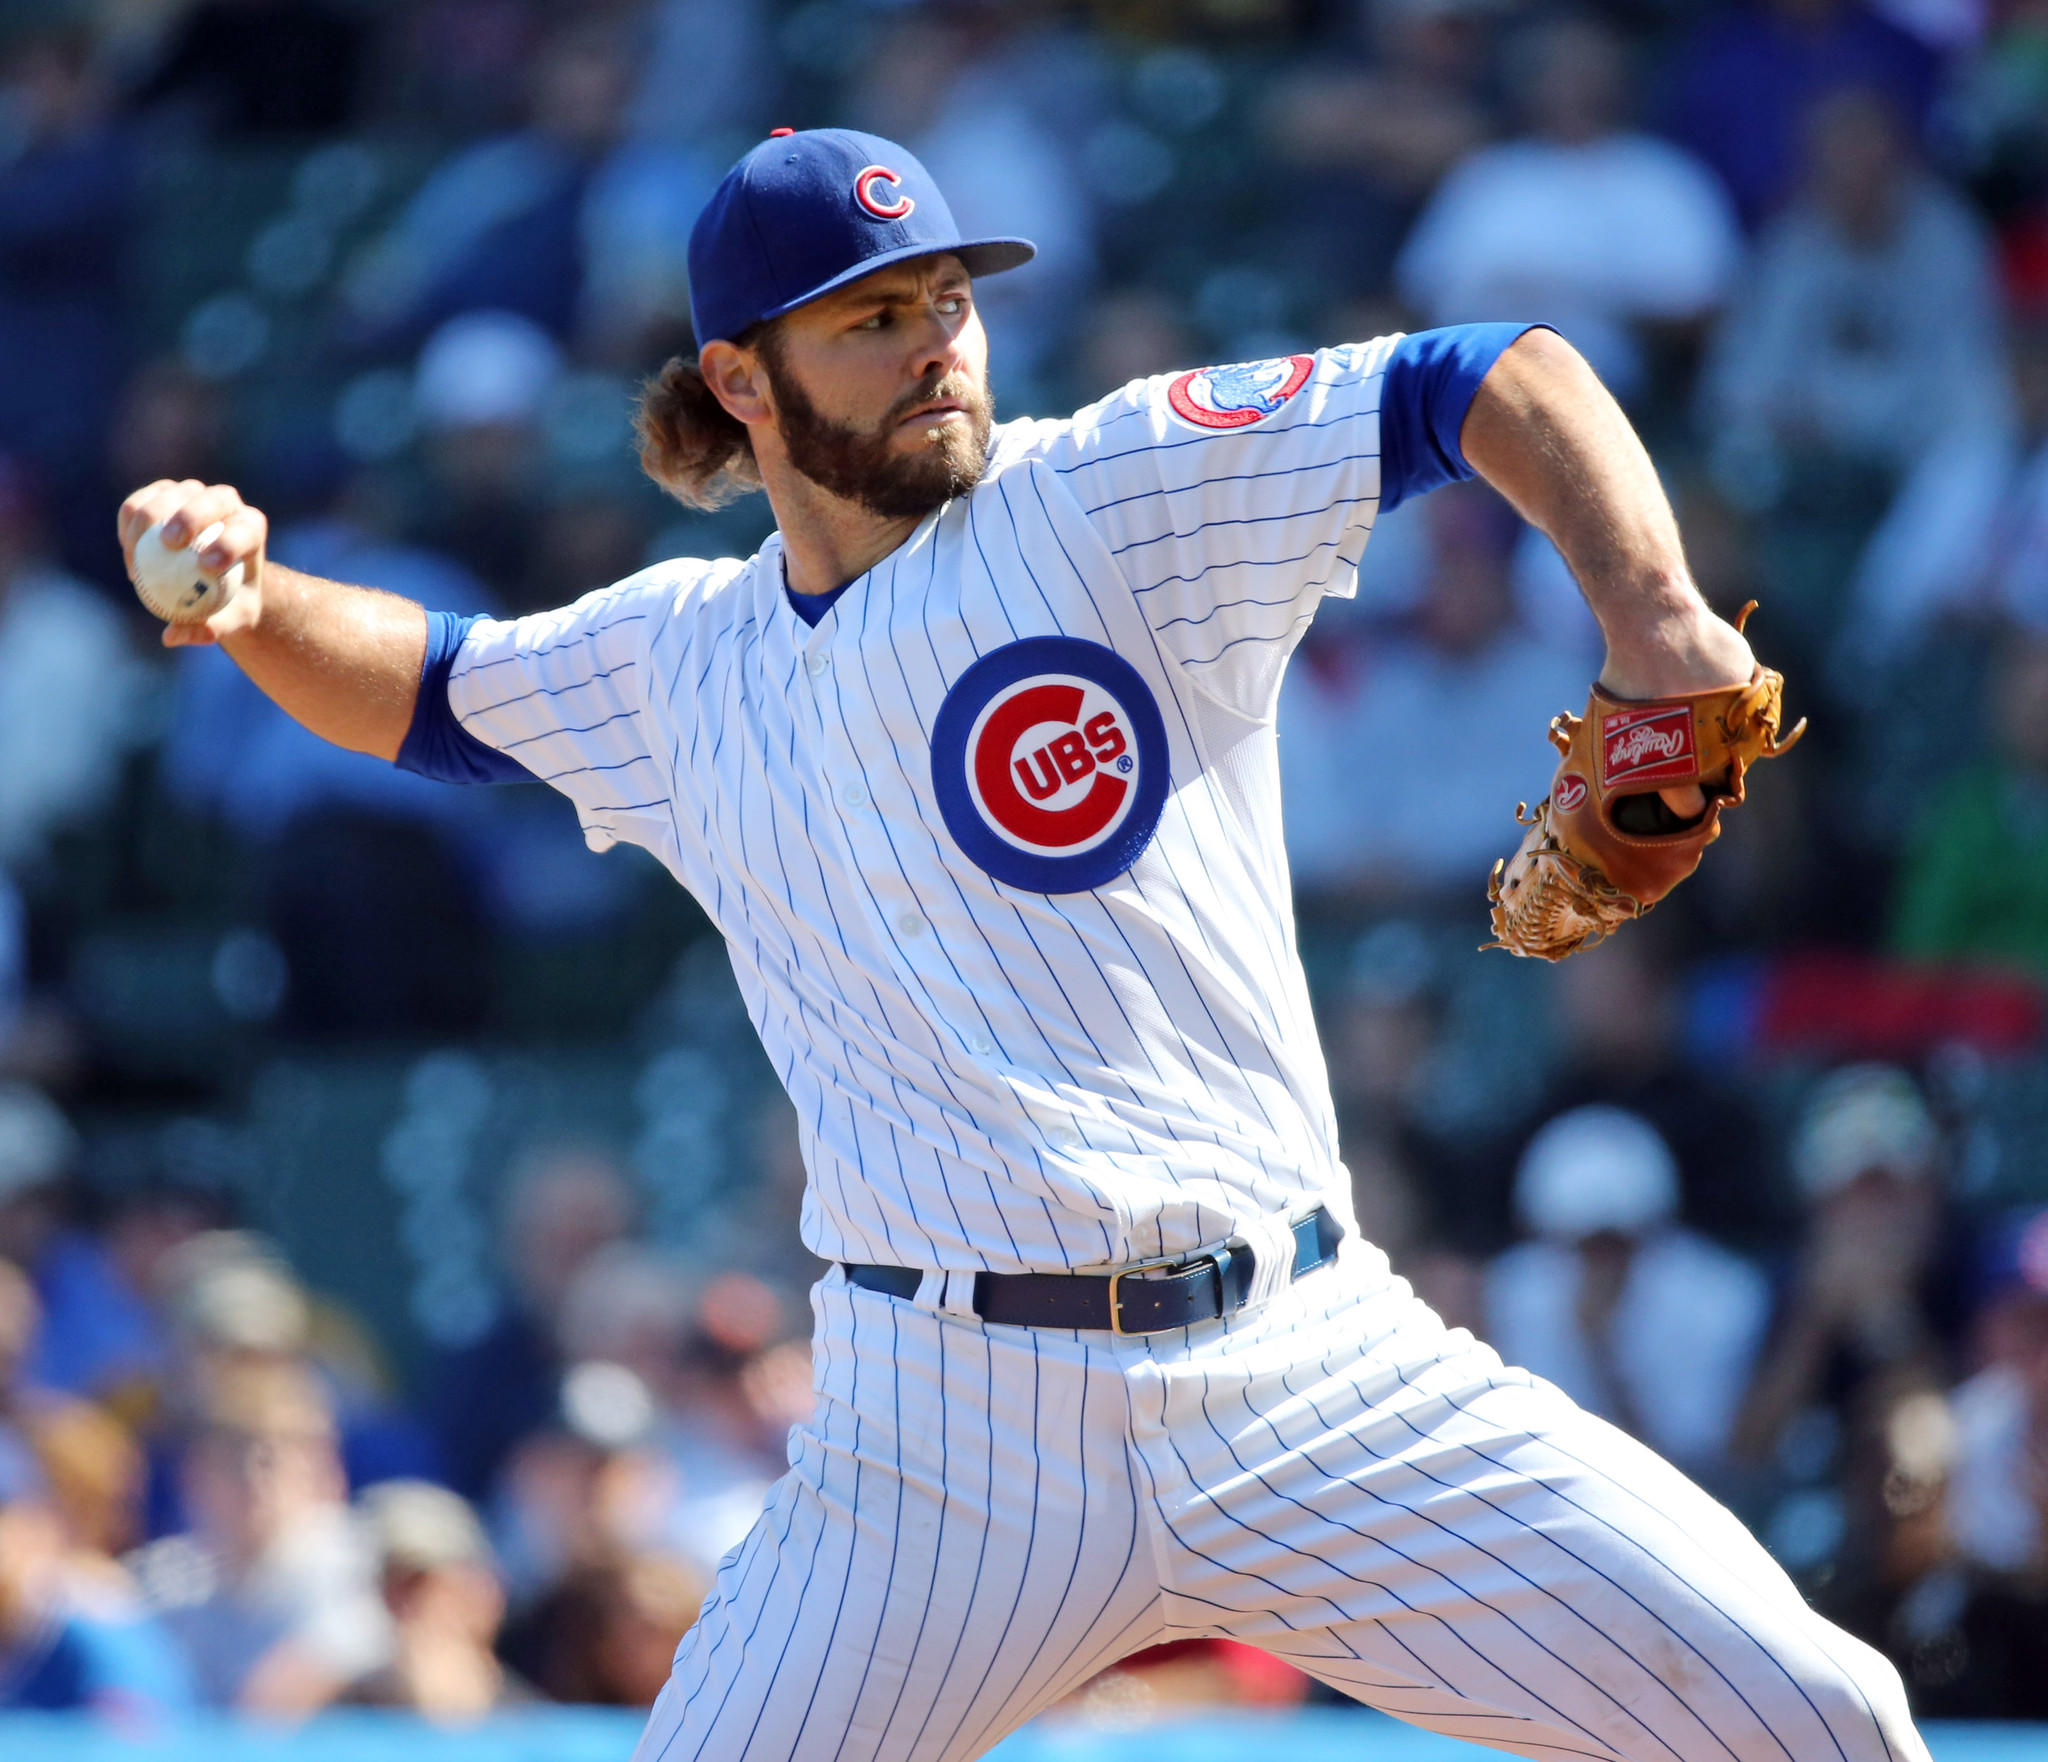 Chicago Cubs starting pitcher Jake Arrieta.